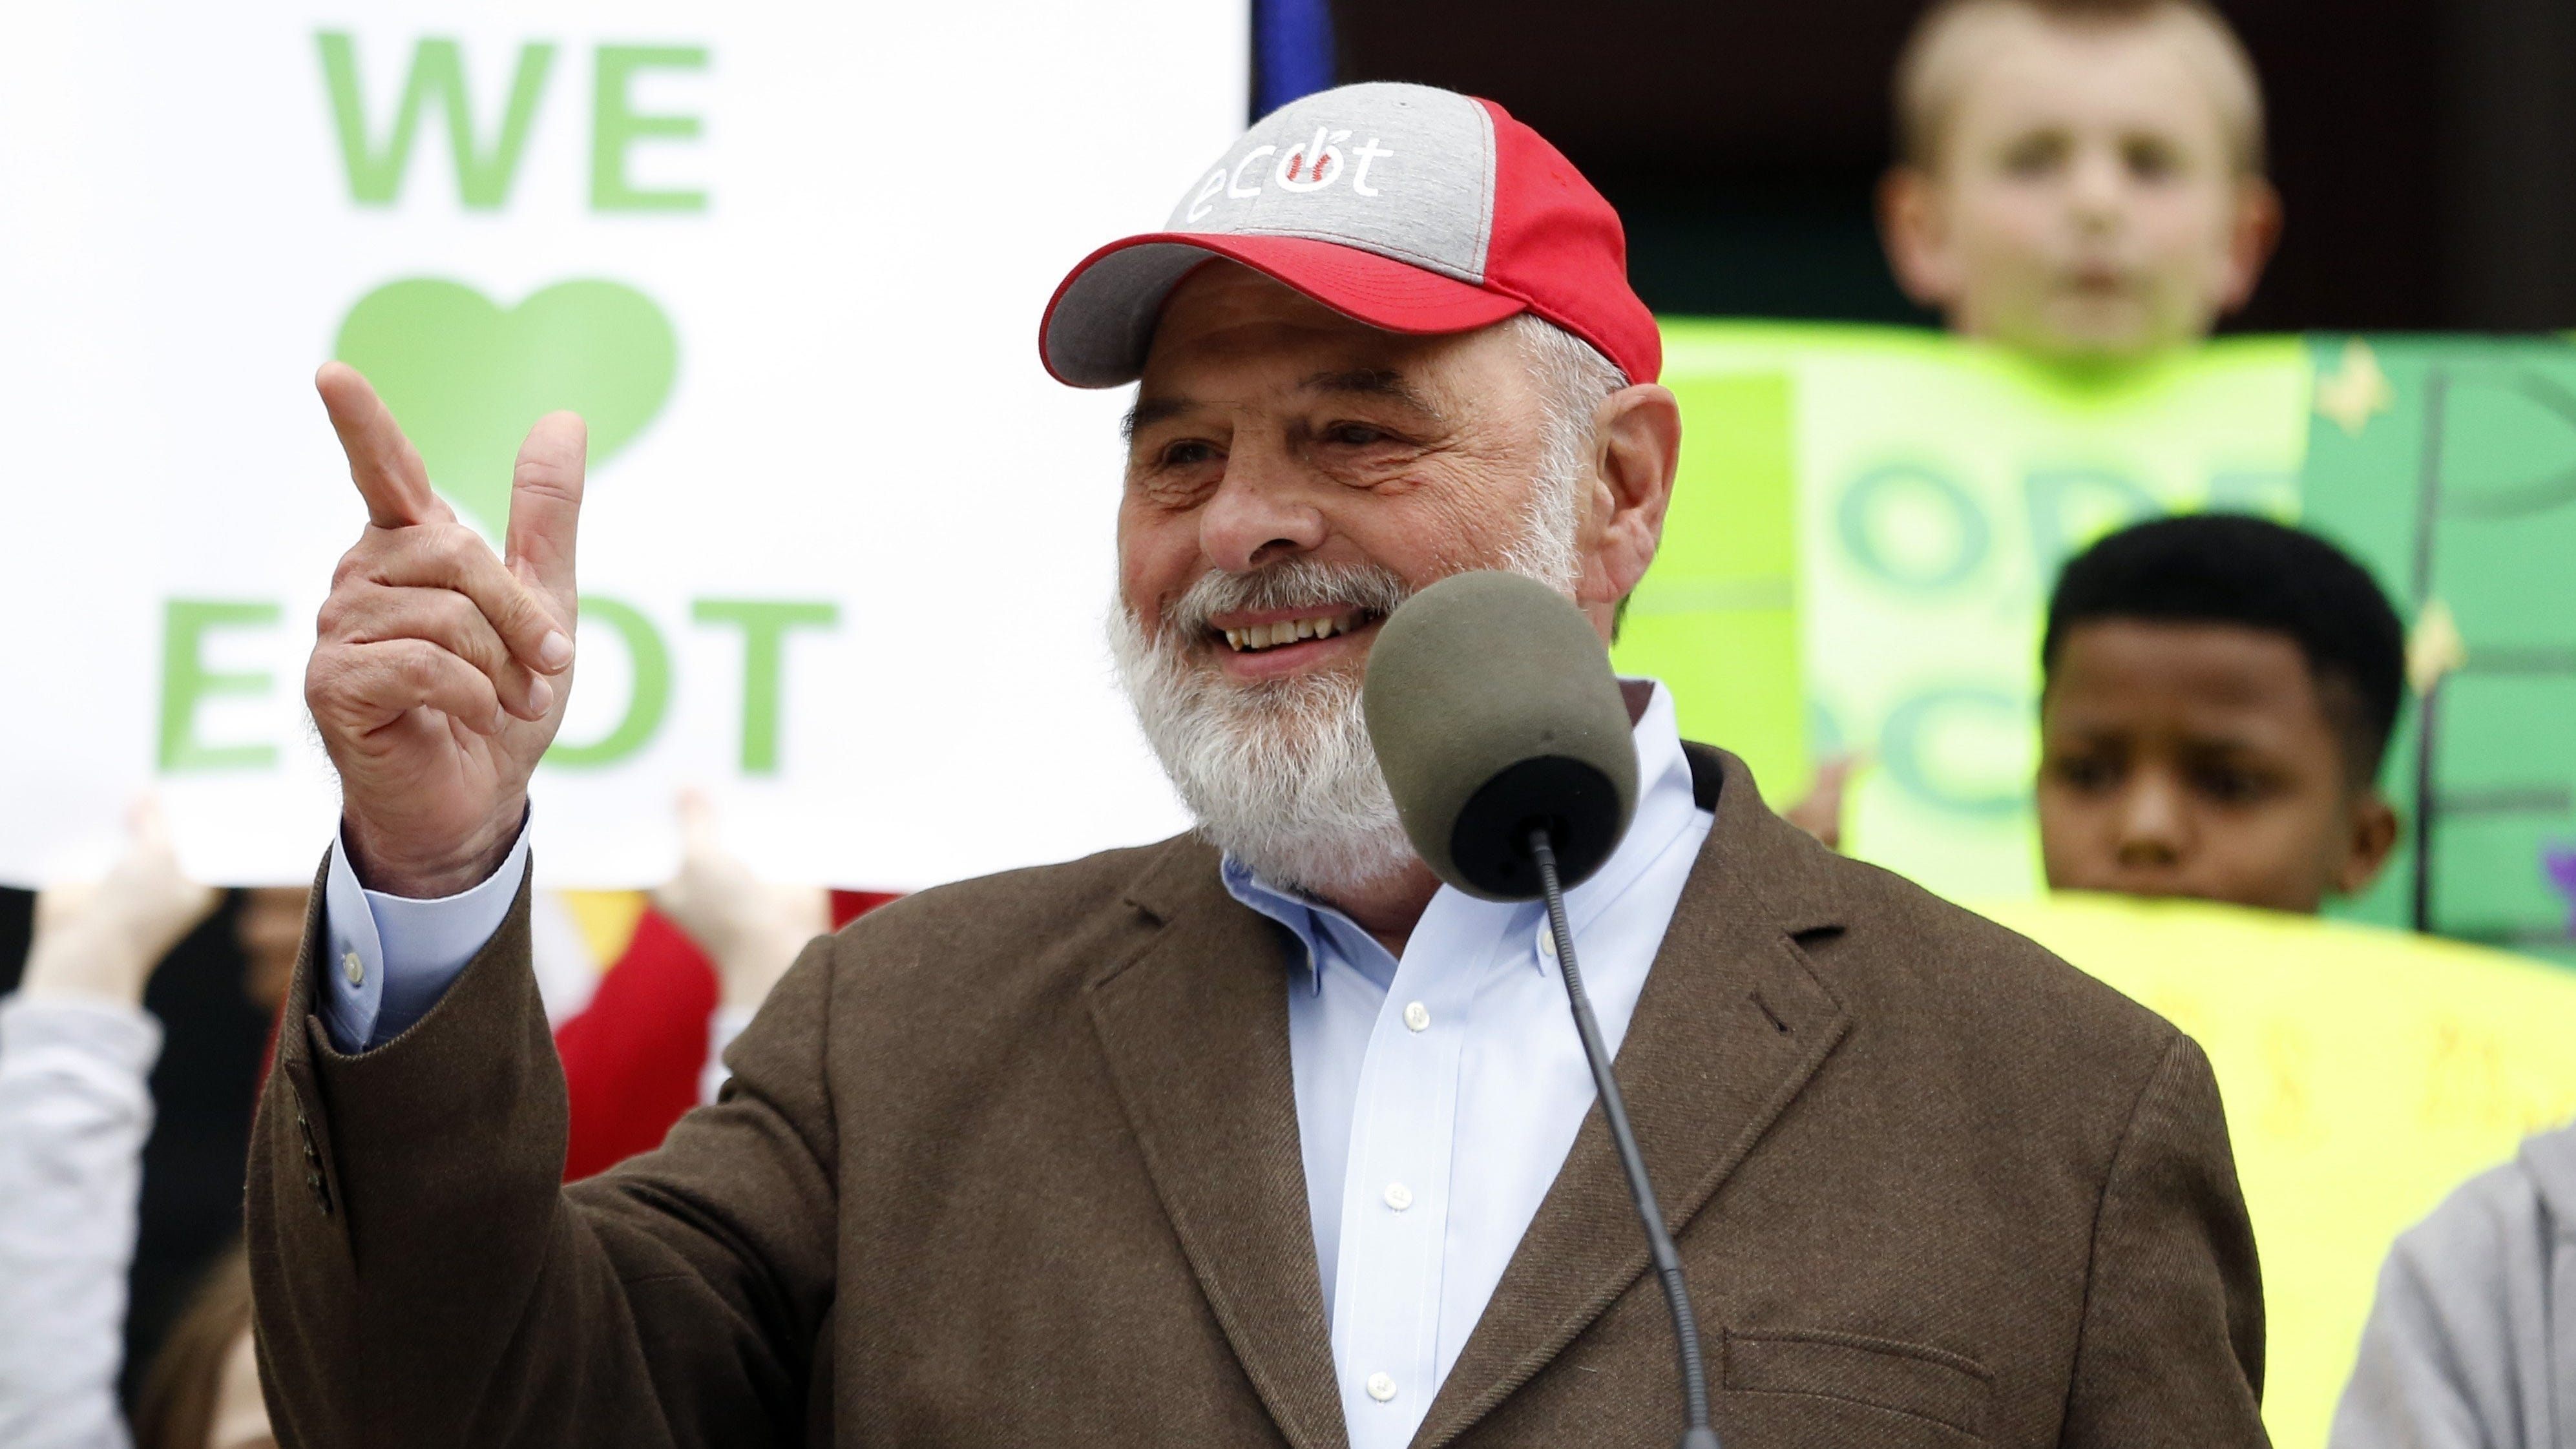 ECOT founder Bill Lager speaks at a 2017 ECOT rally at the Ohio Statehouse.